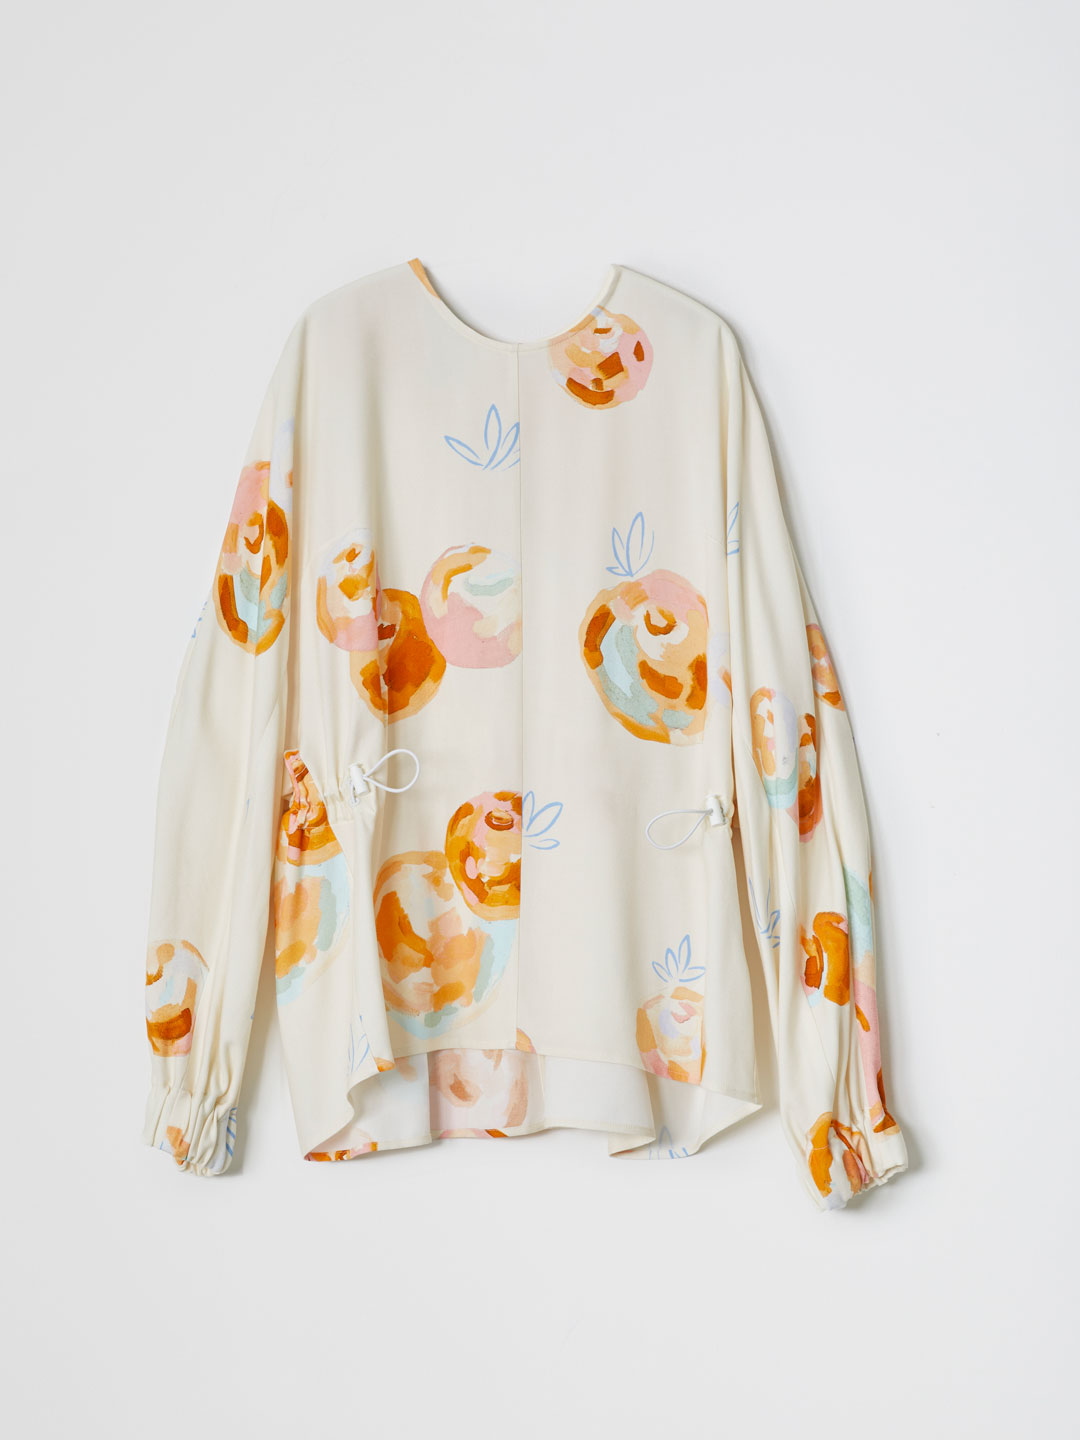 Pastel Fruit Print Blouse - Off White